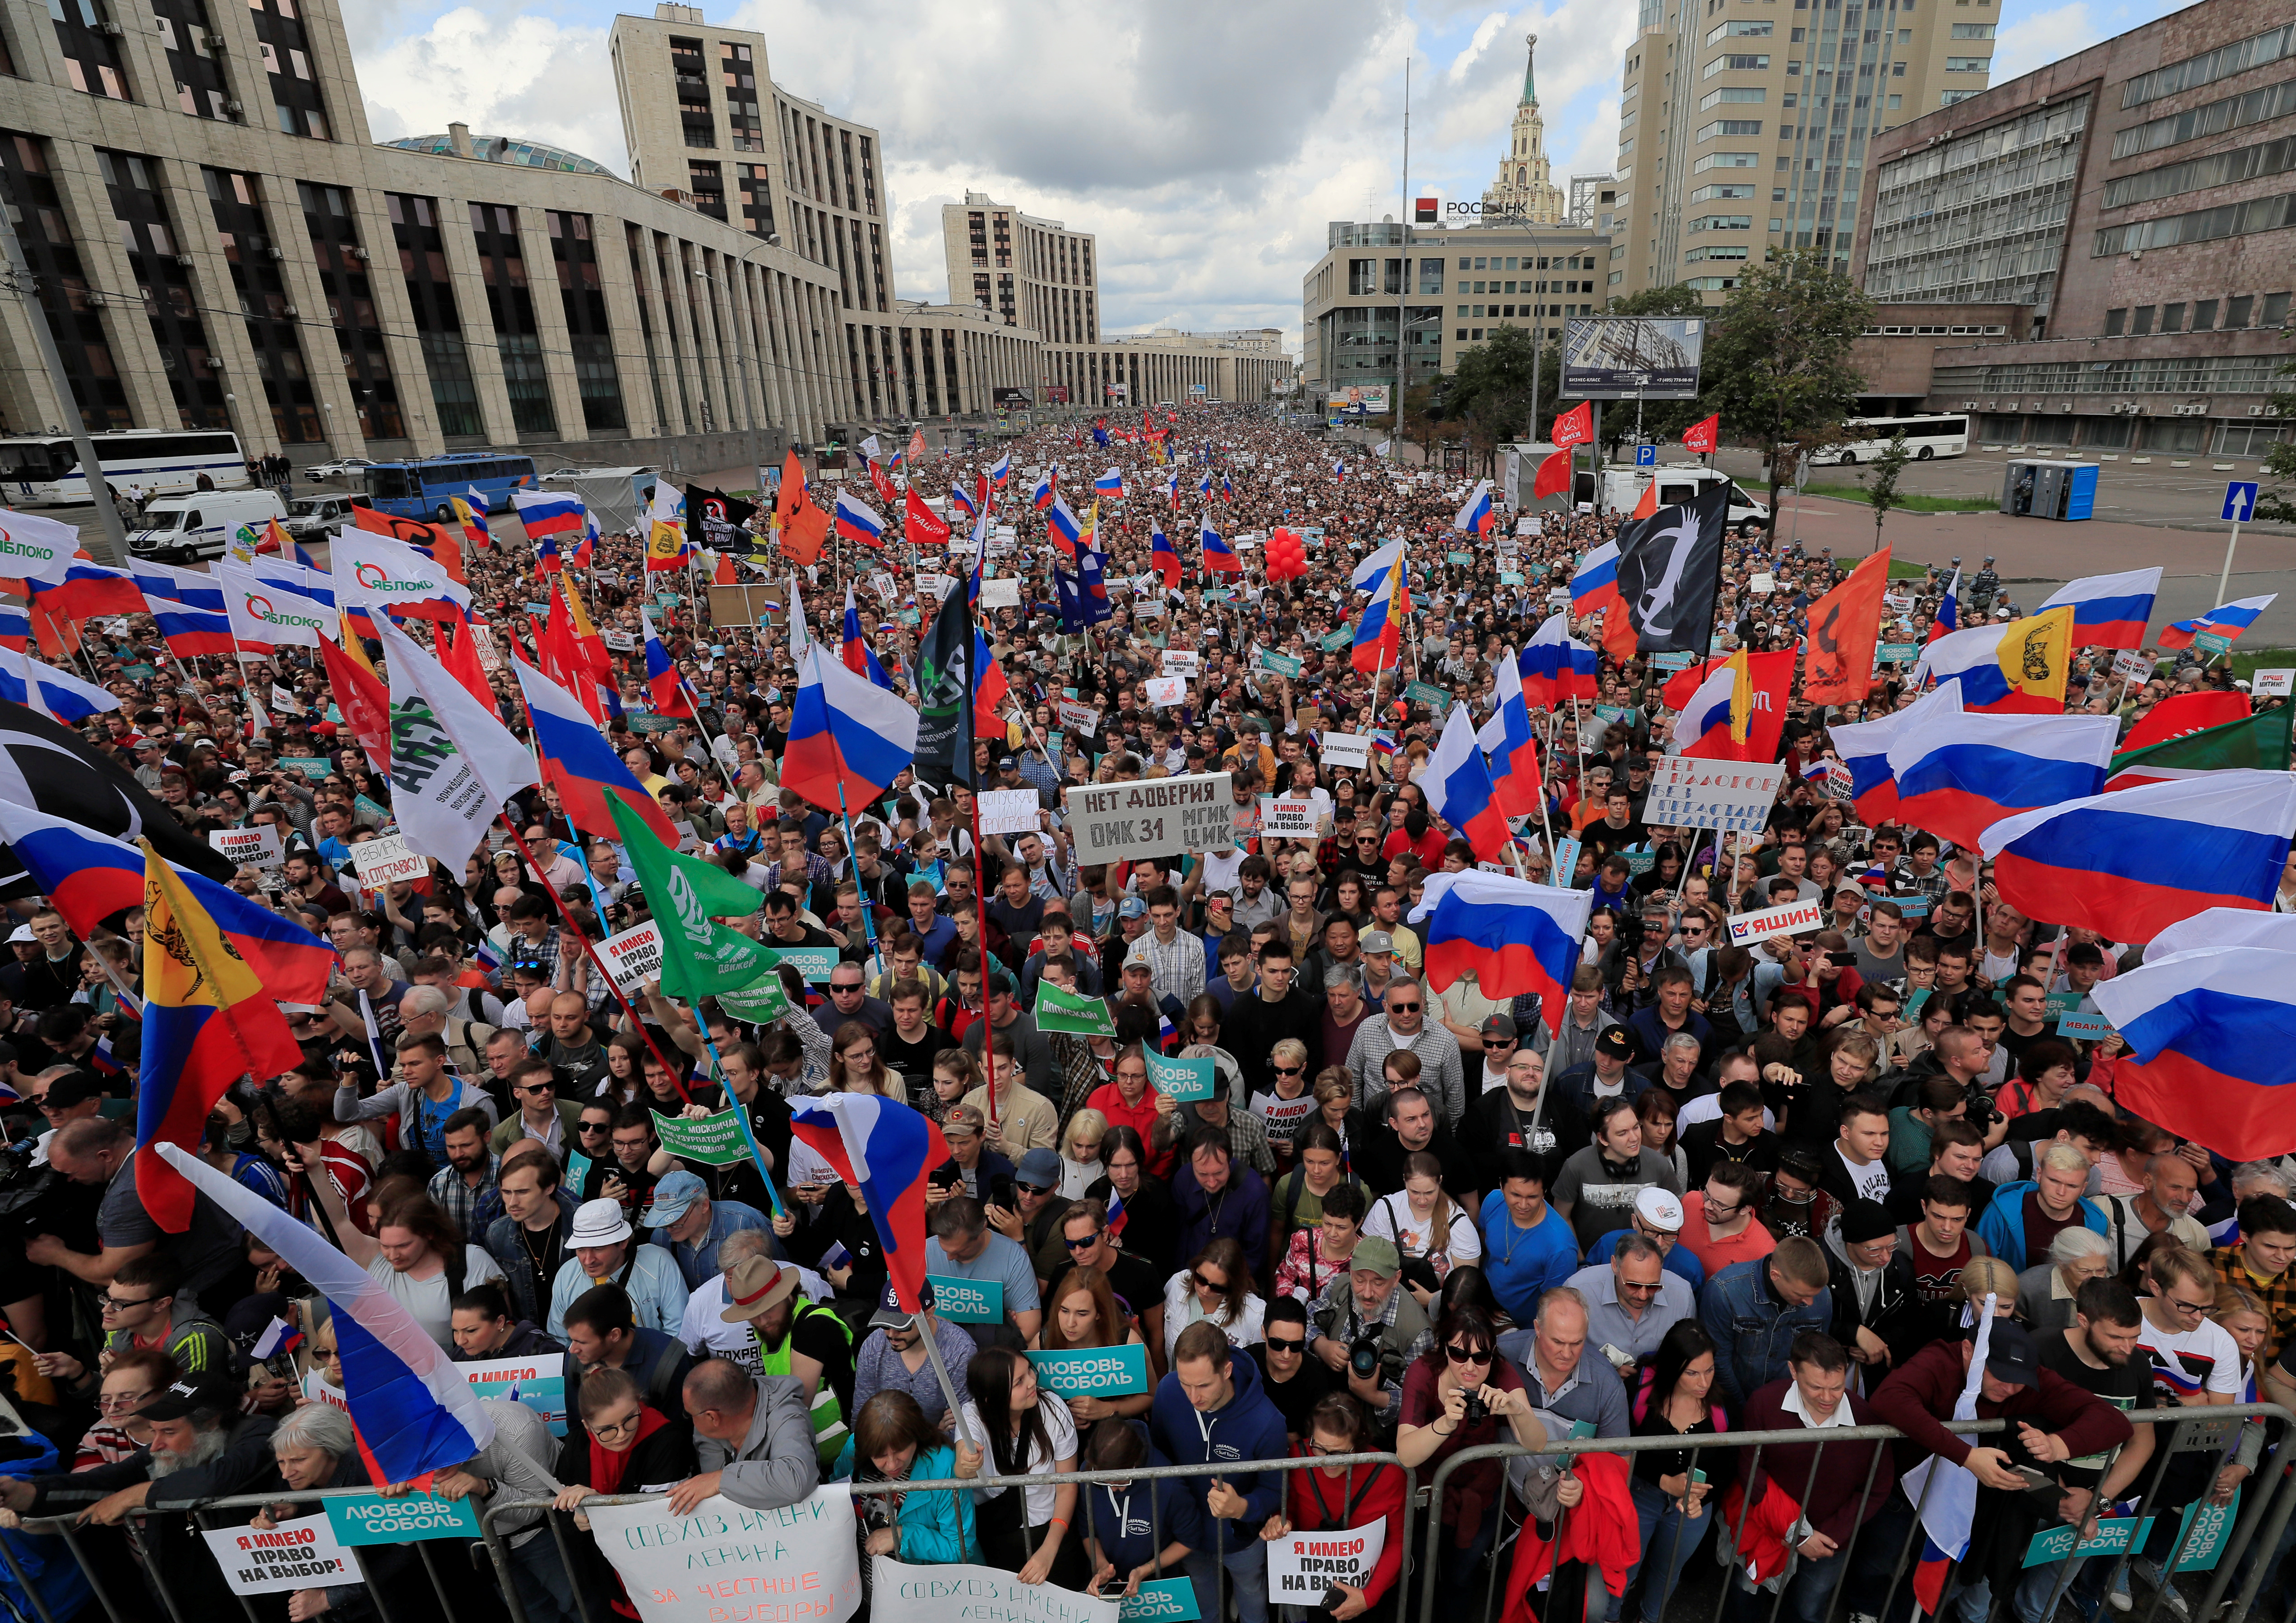 2019-07-20T123434Z_1374073800_RC182B9E1C80_RTRMADP_3_RUSSIA-ELECTION-RALLY.JPG